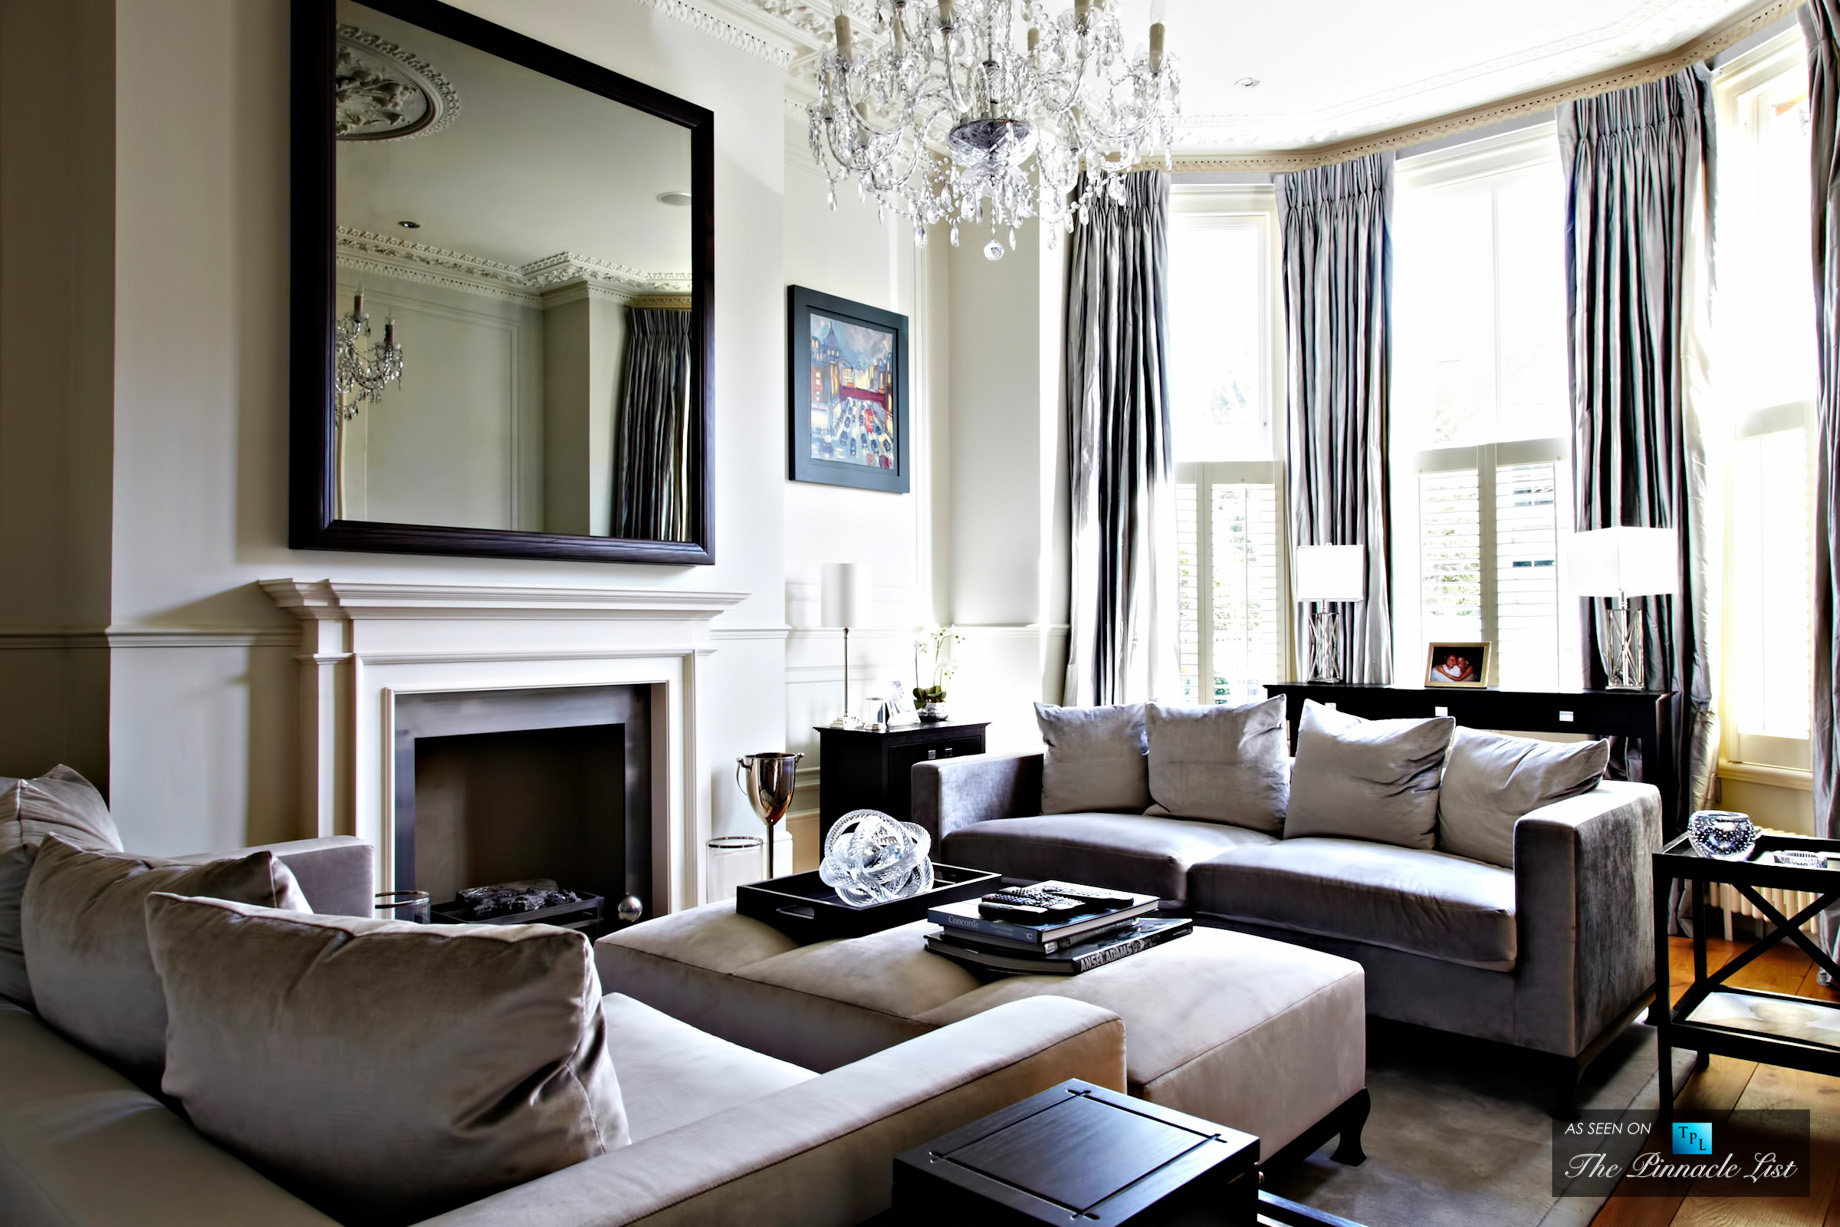 Go Long and Wide with Curtains - Six Simple Ways to Turn a House into a Home with Luxurious Touches